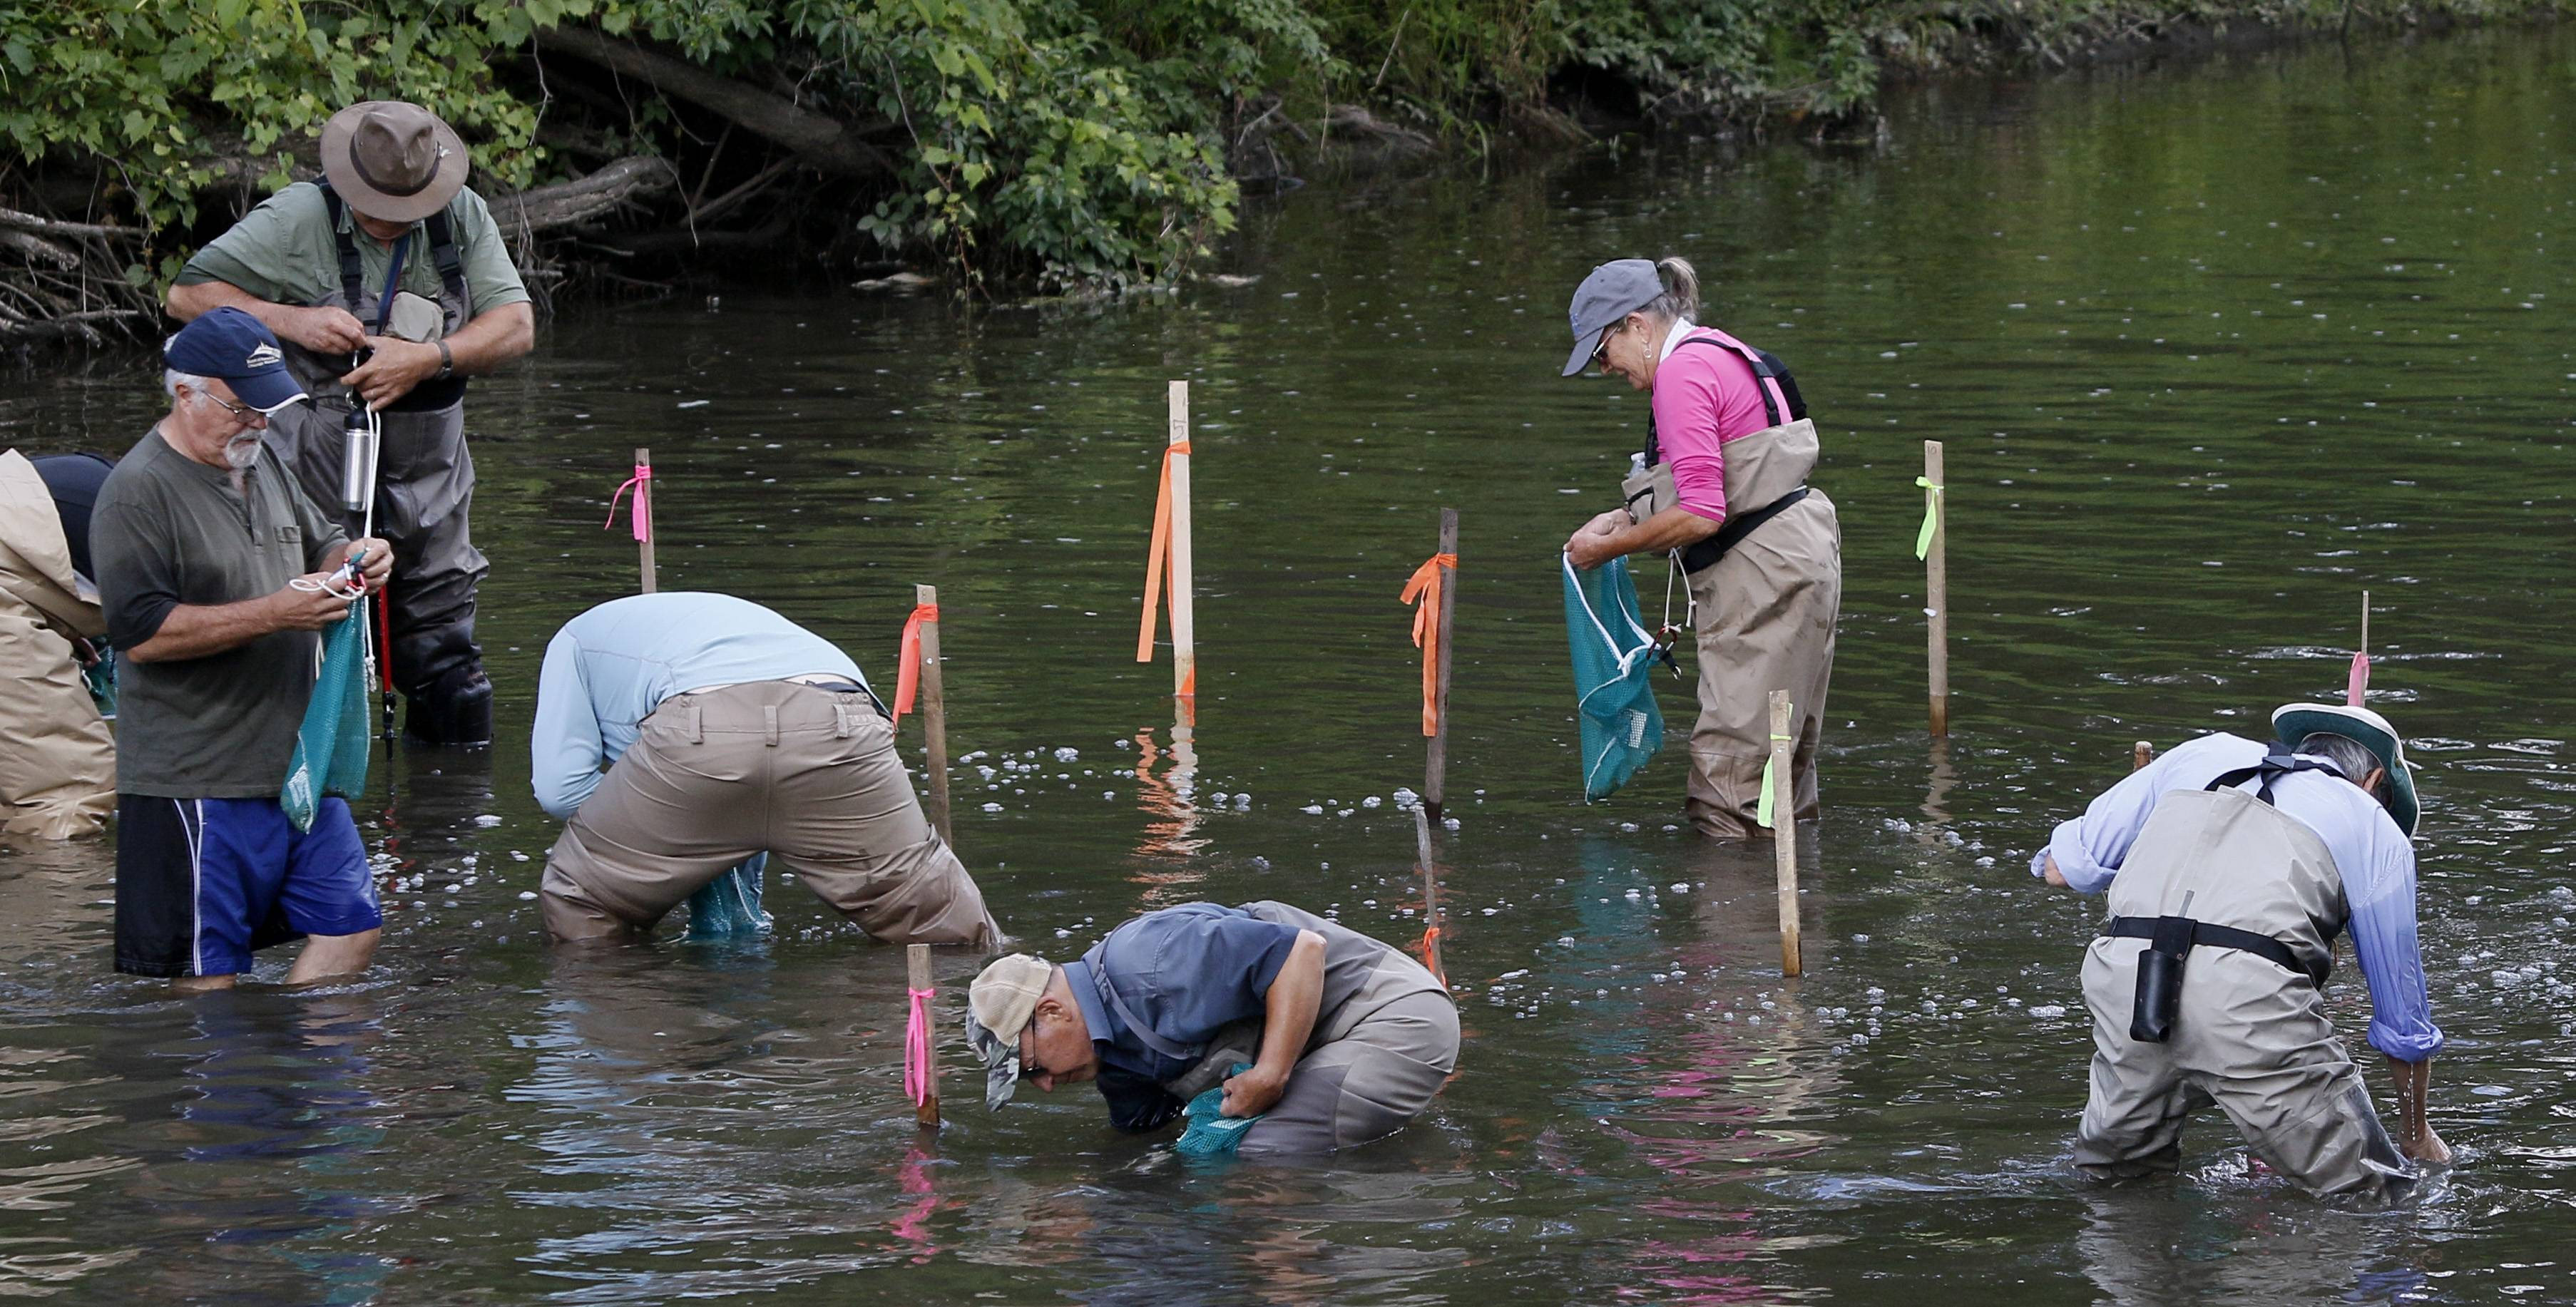 Jessi DeMartini, back, of the Forest Preserve District of DuPage County's Urban Stream Research Center, leads the release of about 500 freshwater mussels into the West Branch DuPage River Saturday near Warrenville. Members of the Illinois Smallmouth Alliance donated their time and financial resources to assist the project.